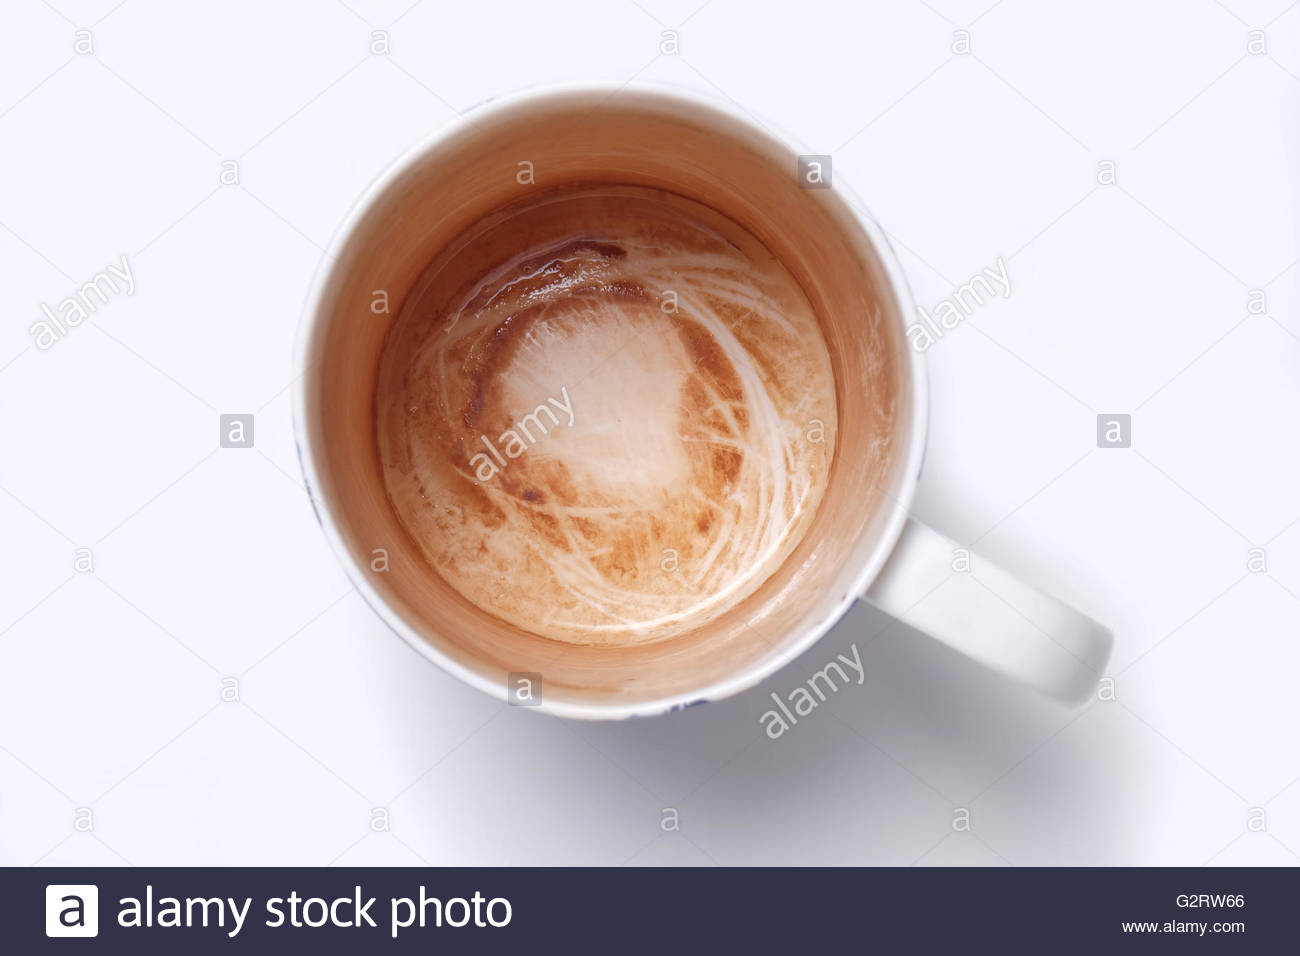 overhead shot of mug with tea stains left inside - Stock Image